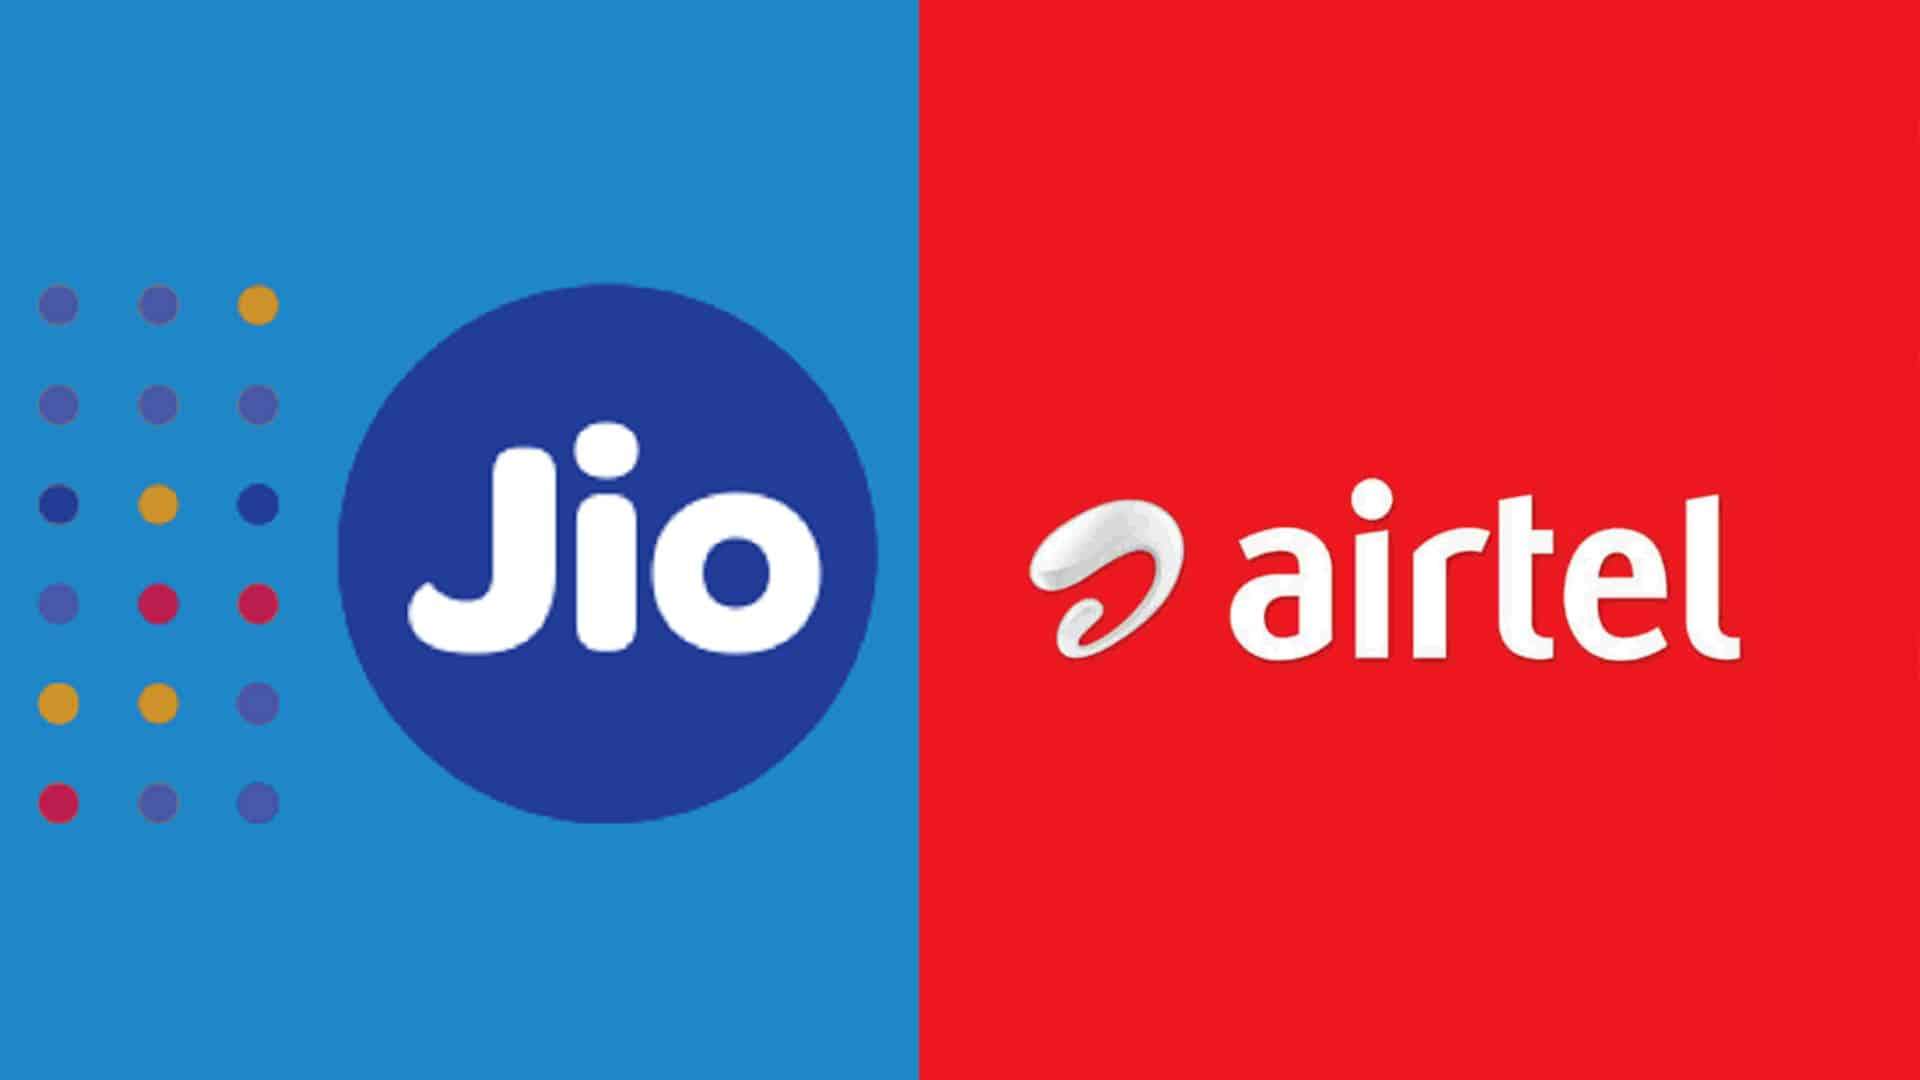 Jio inks pact with Airtel for acquisition of some spectrum; deal value at Rs 1,497 cr